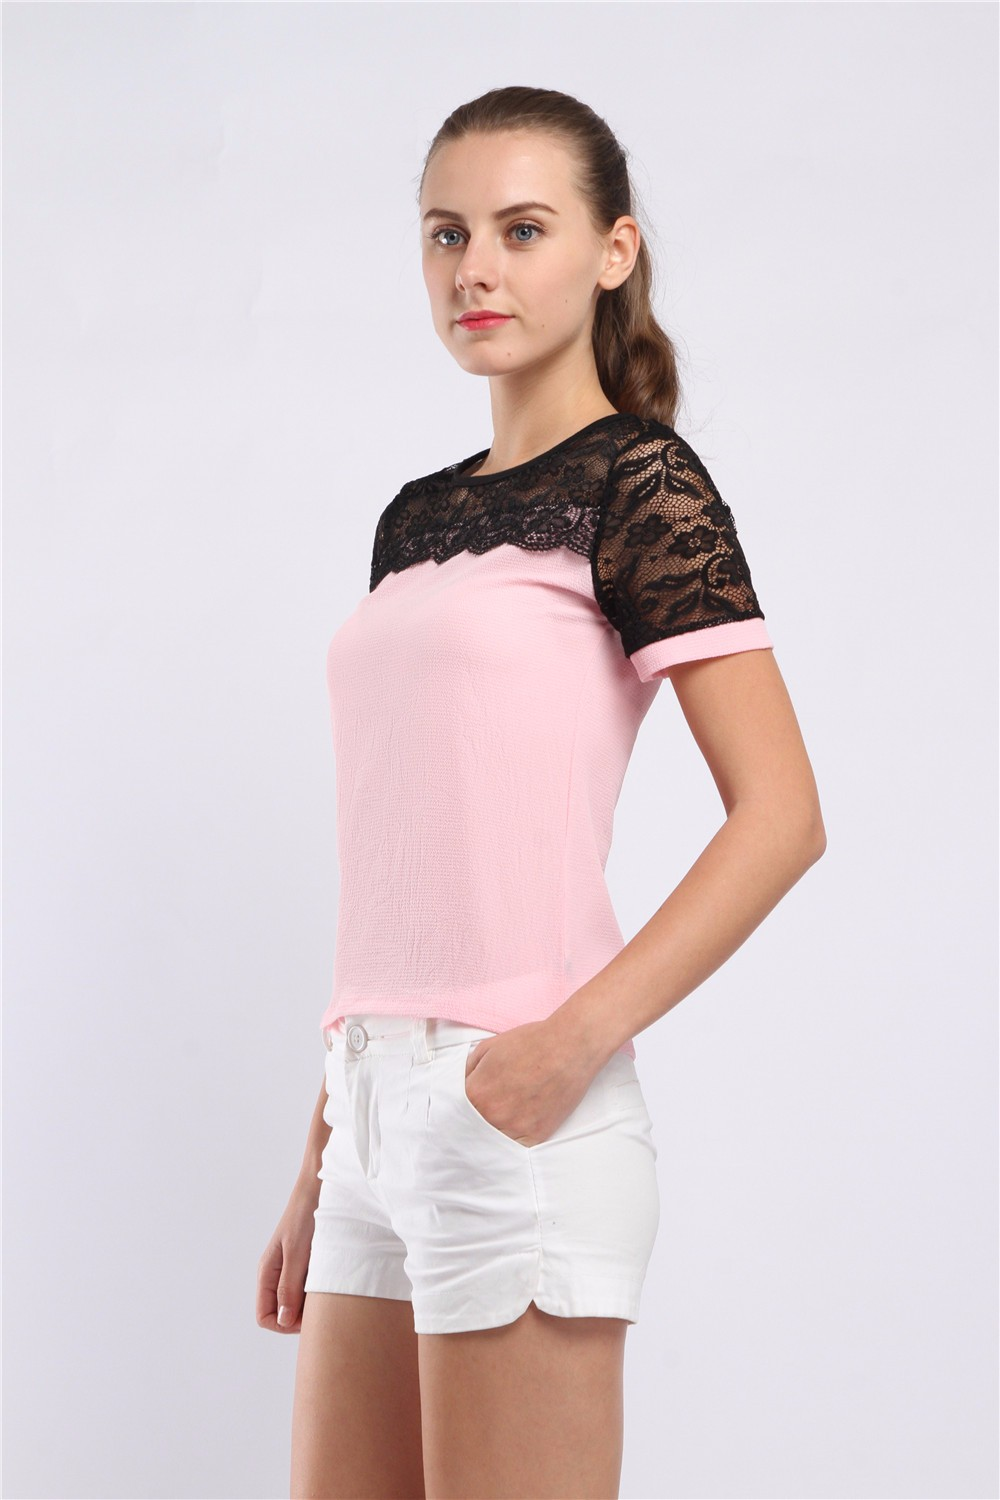 Women Blouses Summer Lace Chiffon Blouse Casual Blusa Feminina Tops Fashion Chemise Femme Shirts Plus Size 5XL Red White Pink 16